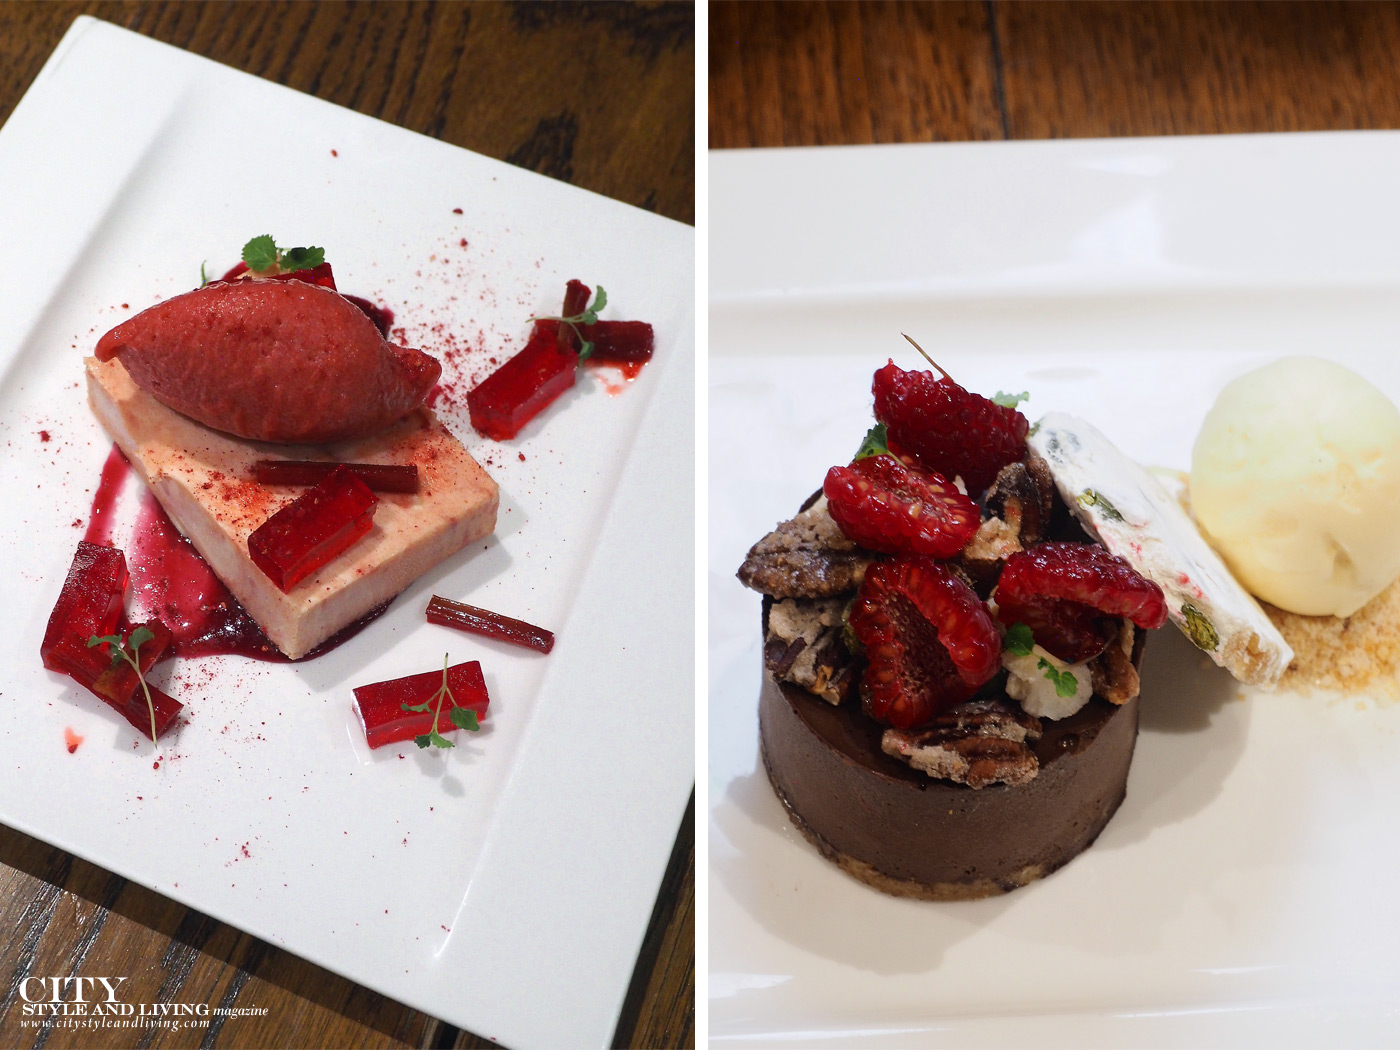 City Style and Living Magazine Winter 2018 Travel Wales Luxury Hotel Holm House Penarth desserts at restaurant